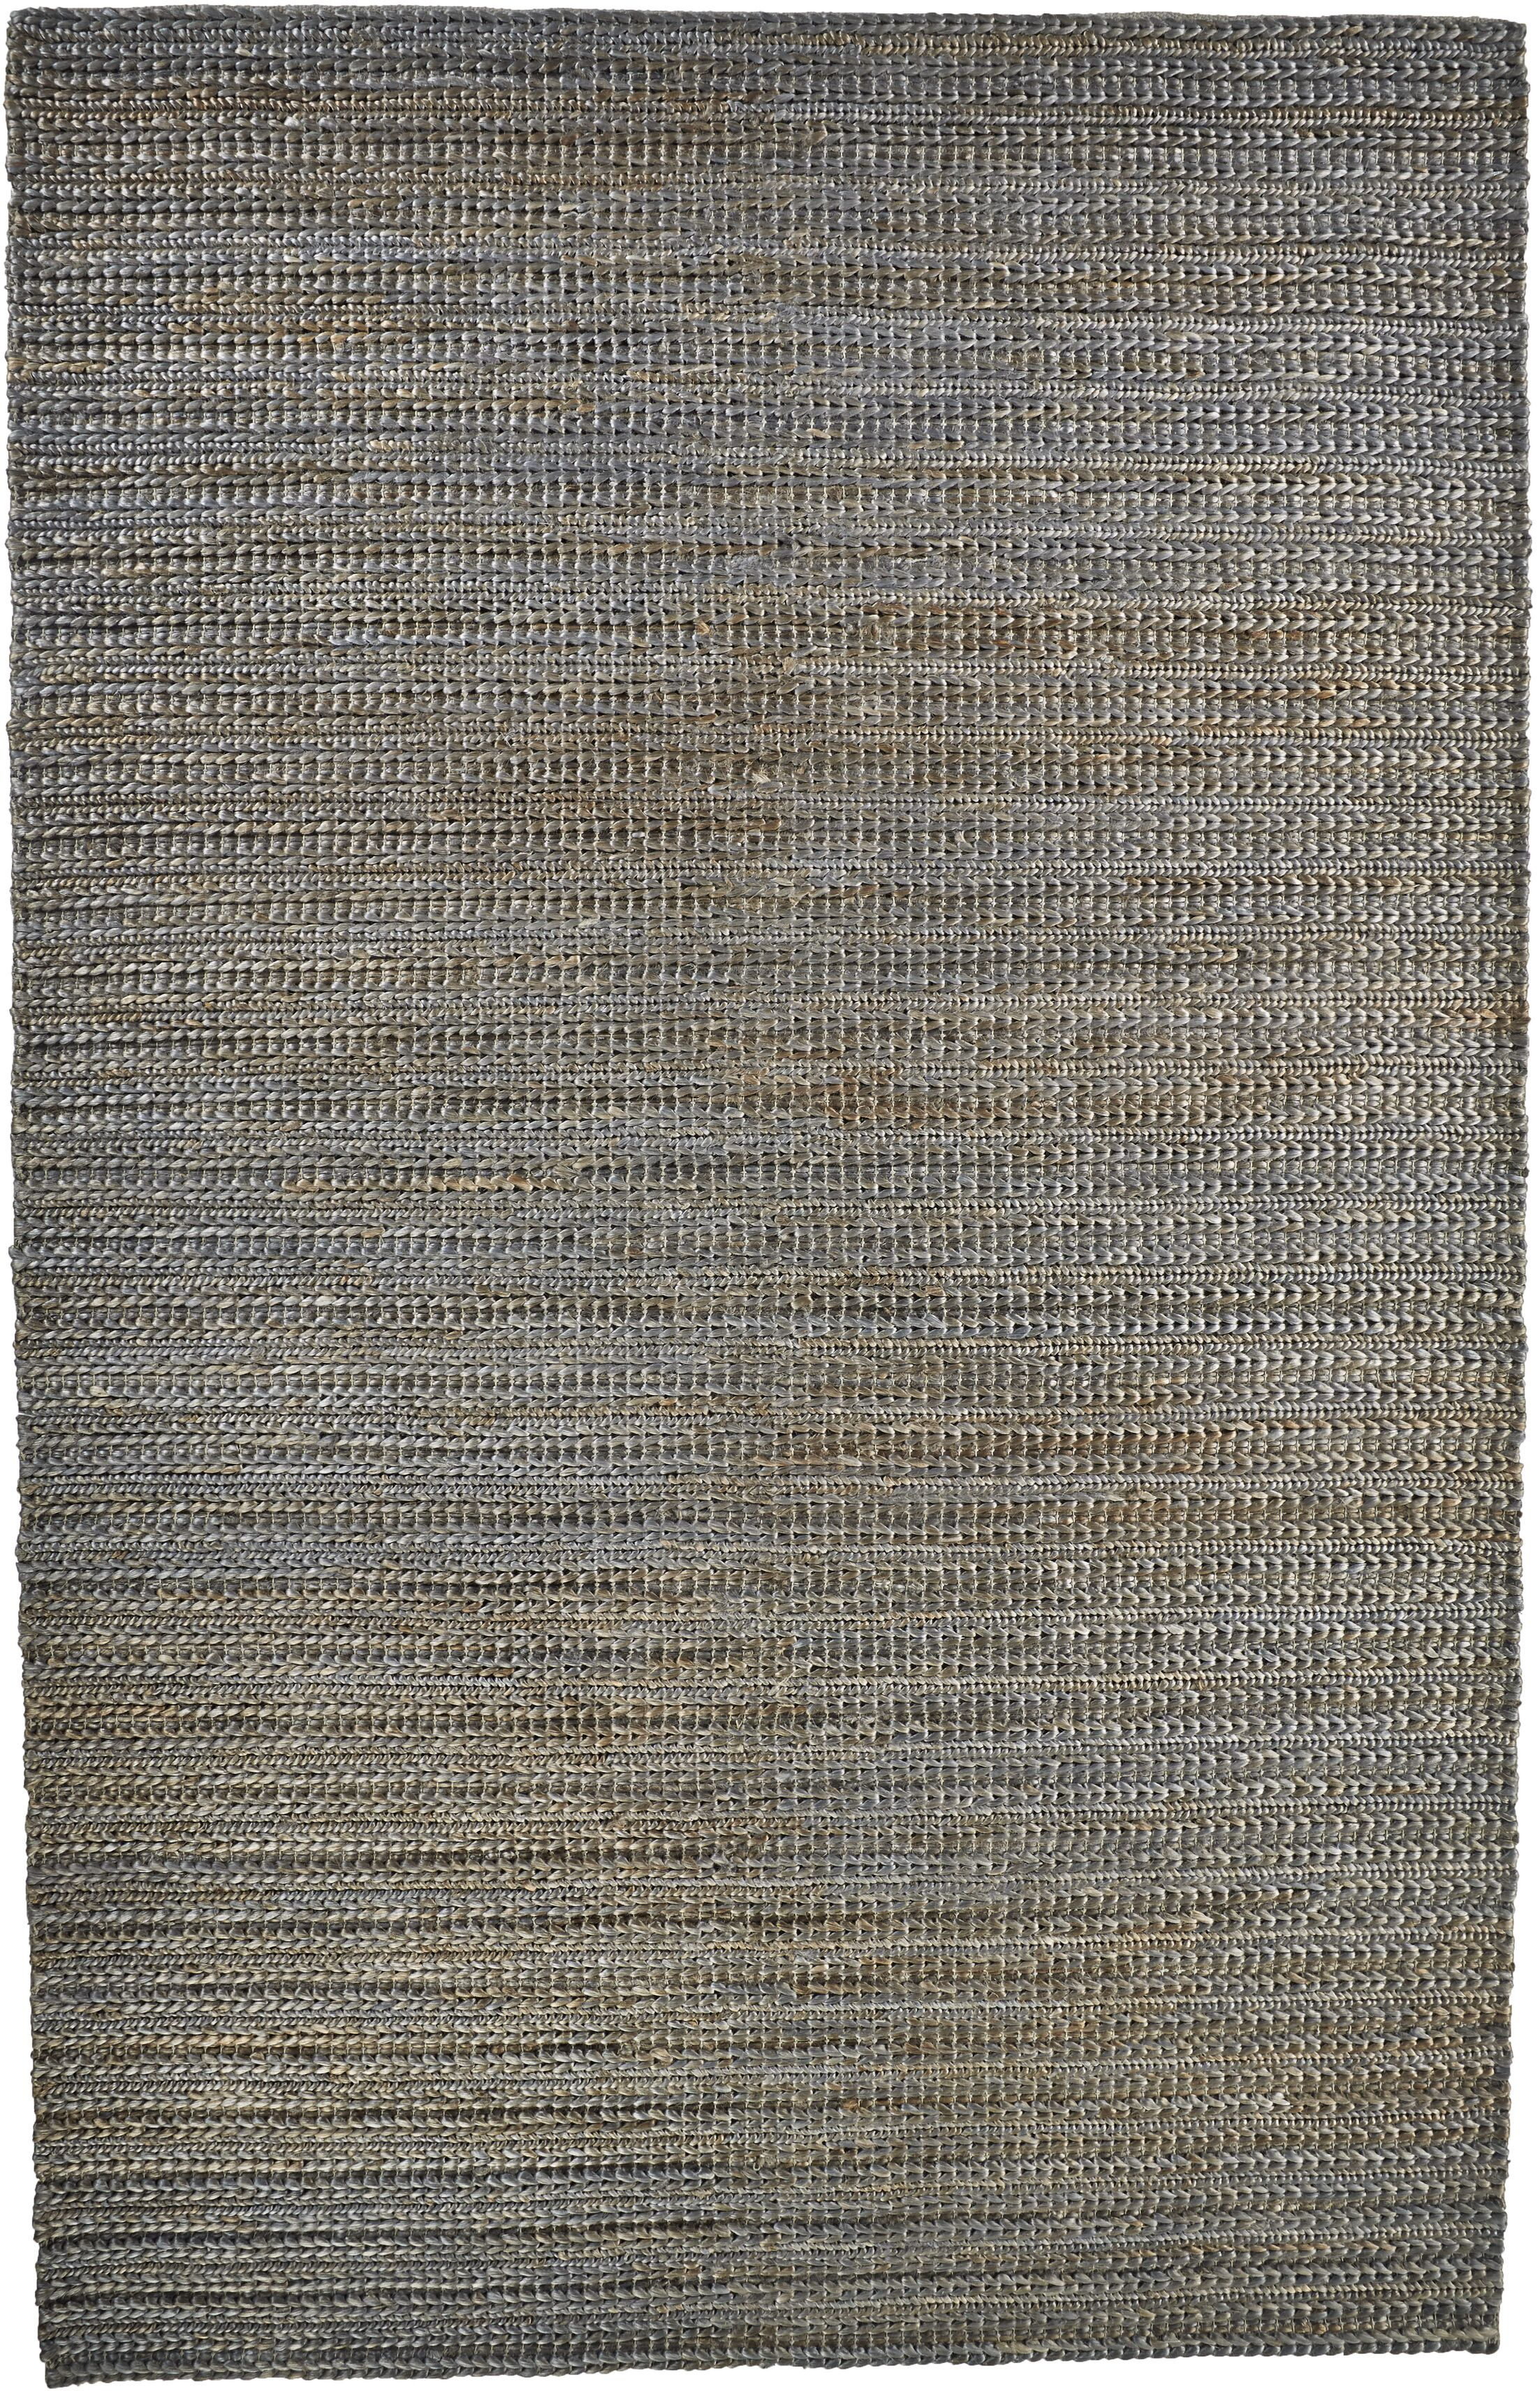 Riaria Hand-Woven Bluestone Area Rug Rug Size: Rectangle 5' x 8'